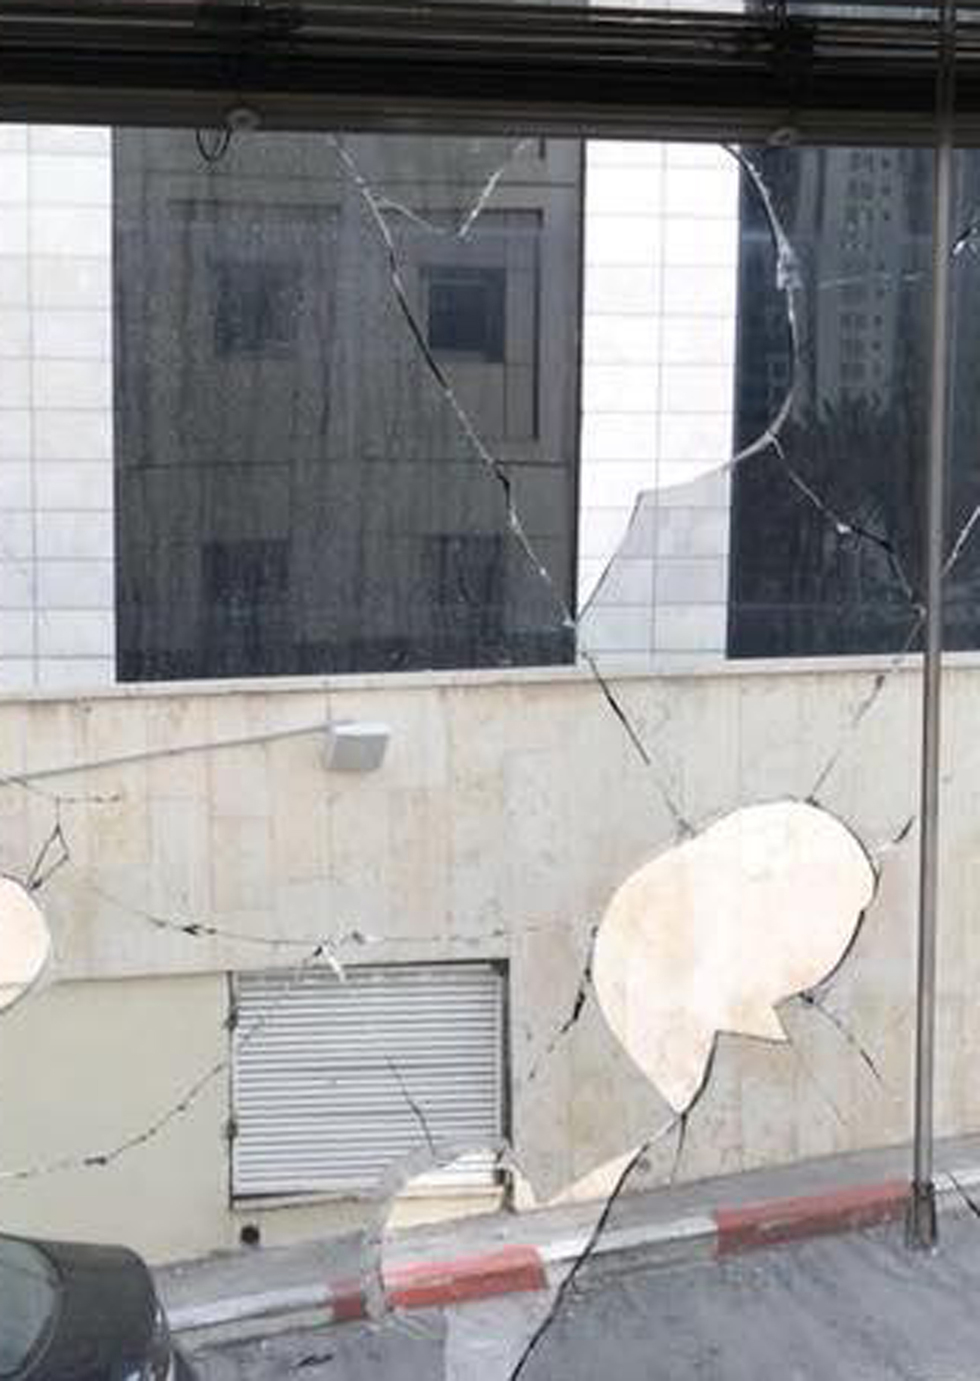 Damage caused from stones thrown at Ashdod municipality building